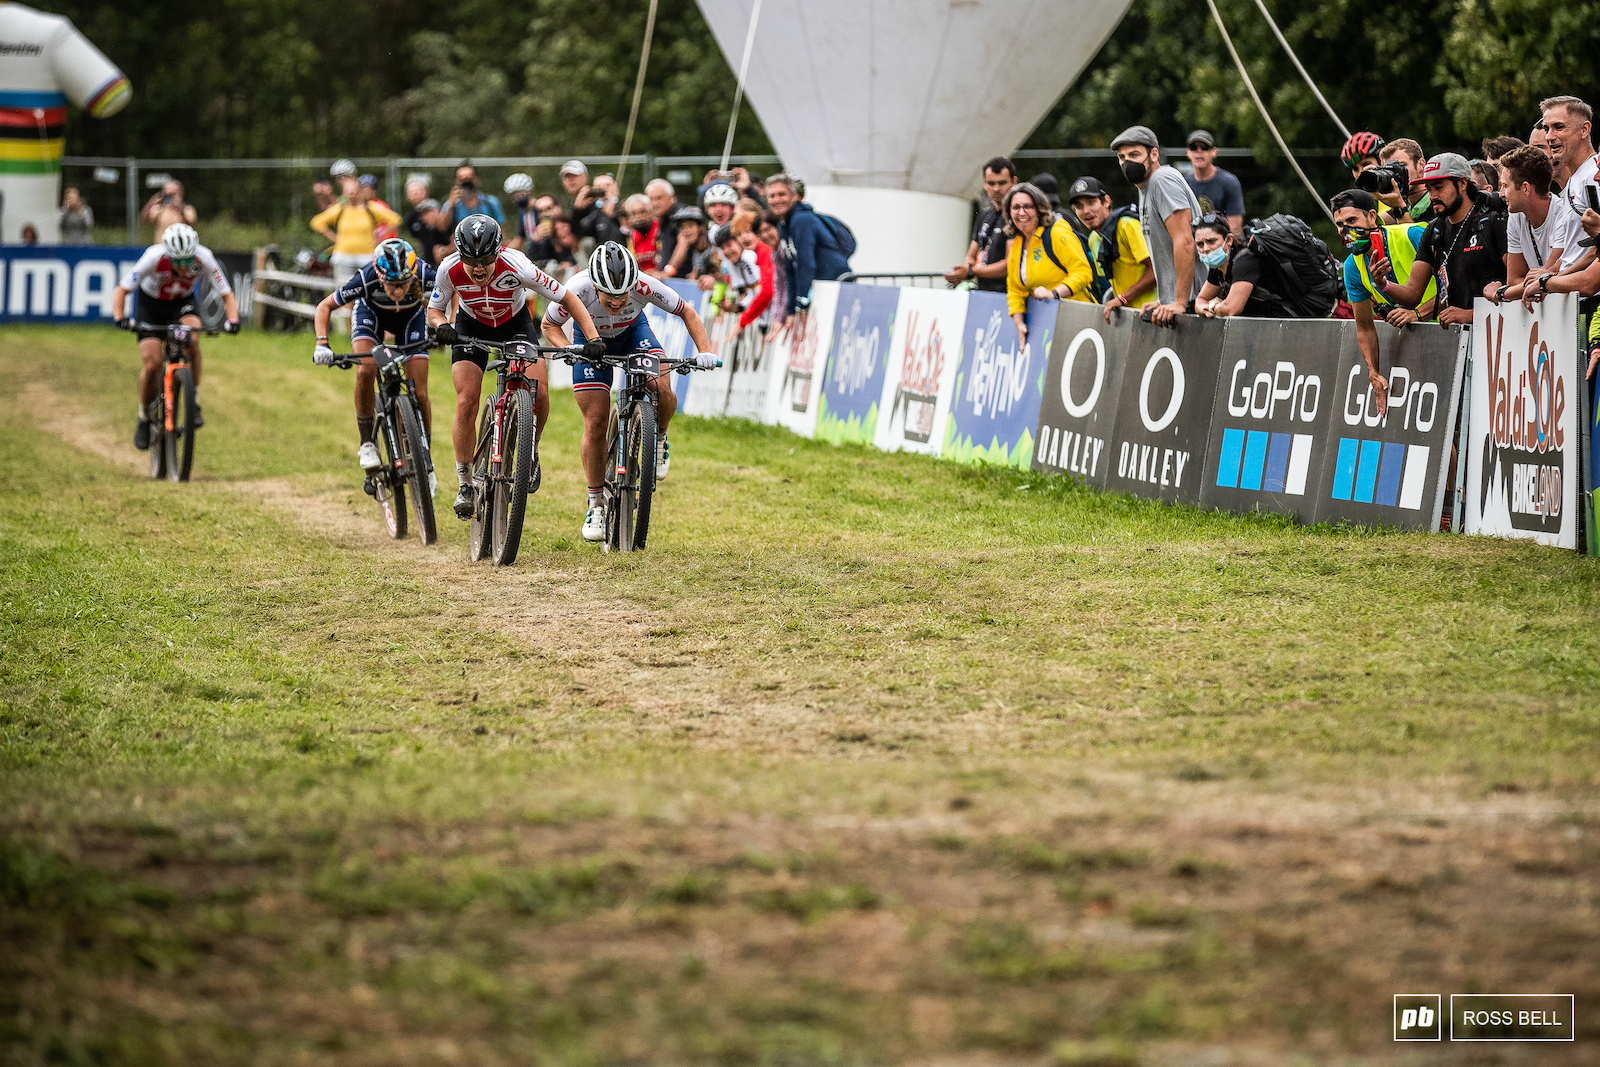 It came down to a 3 way sprint between Sina Frei Evie Richards and Pauline Ferrand Prevot.